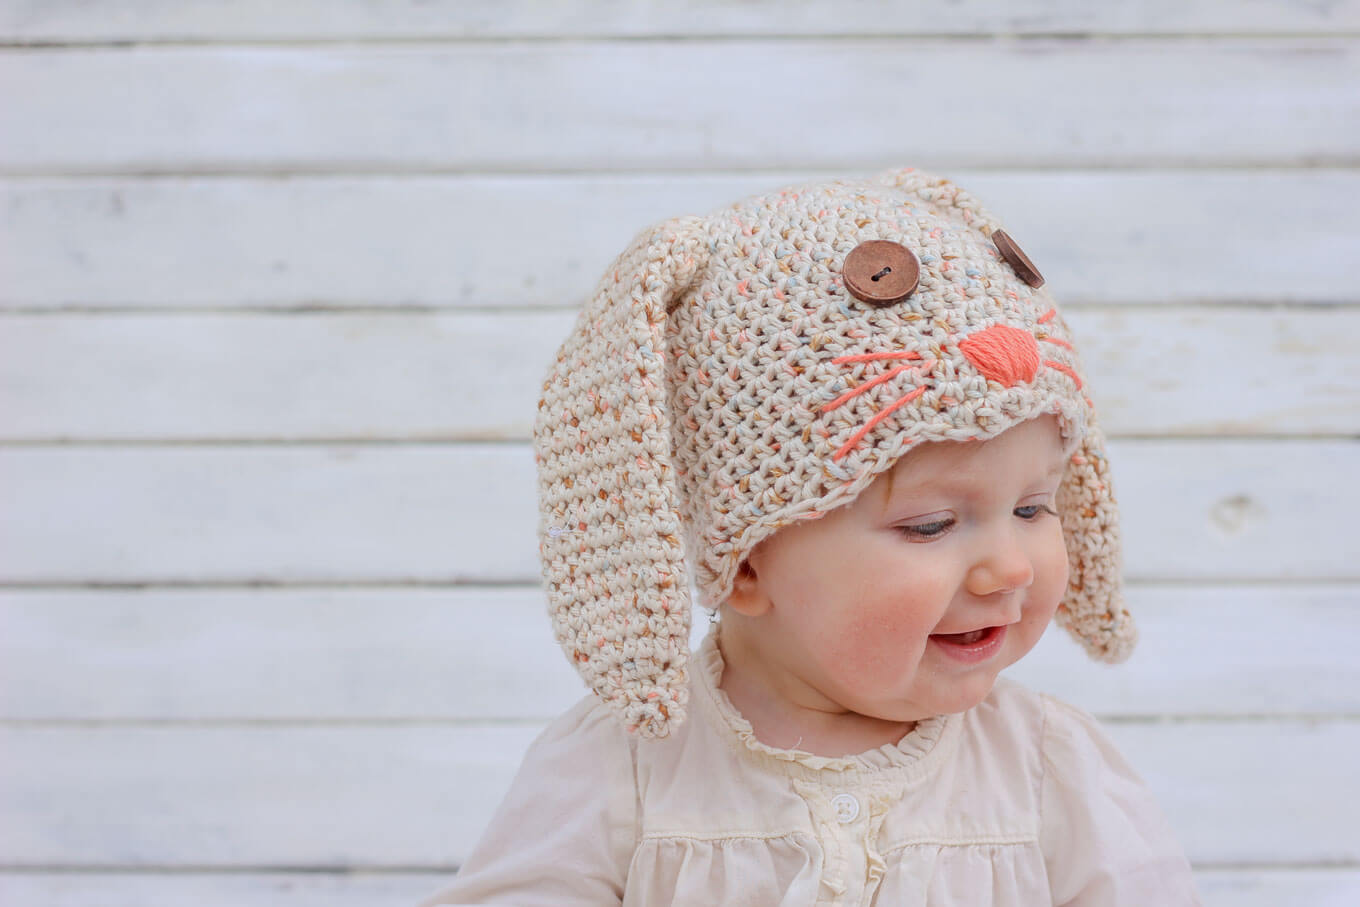 e30c288130c This free crochet bunny hat pattern makes a darling DIY Easter gift for  your favorite baby